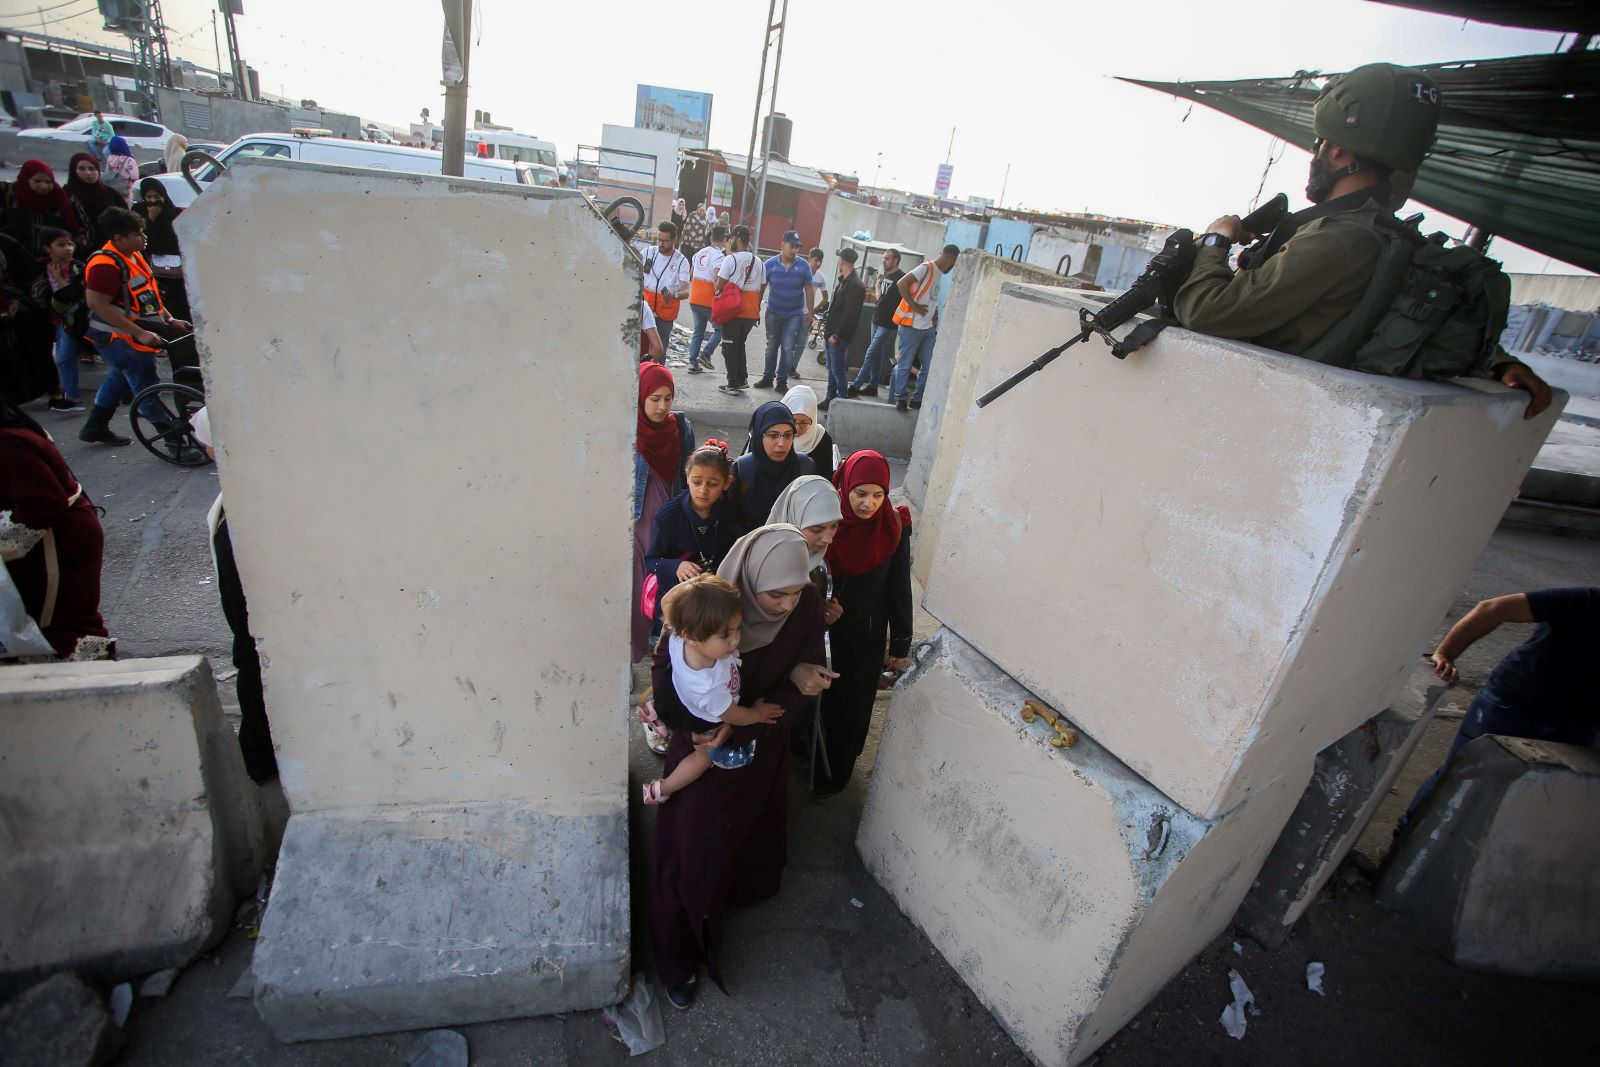 Palestinians make their way through the Qalandia checkpoint during the holy fasting month of Ramadan to Jerusalem's Al-Aqsa mosque, near the West Bank city of Ramallah, May 24, 2019. (Flash90)